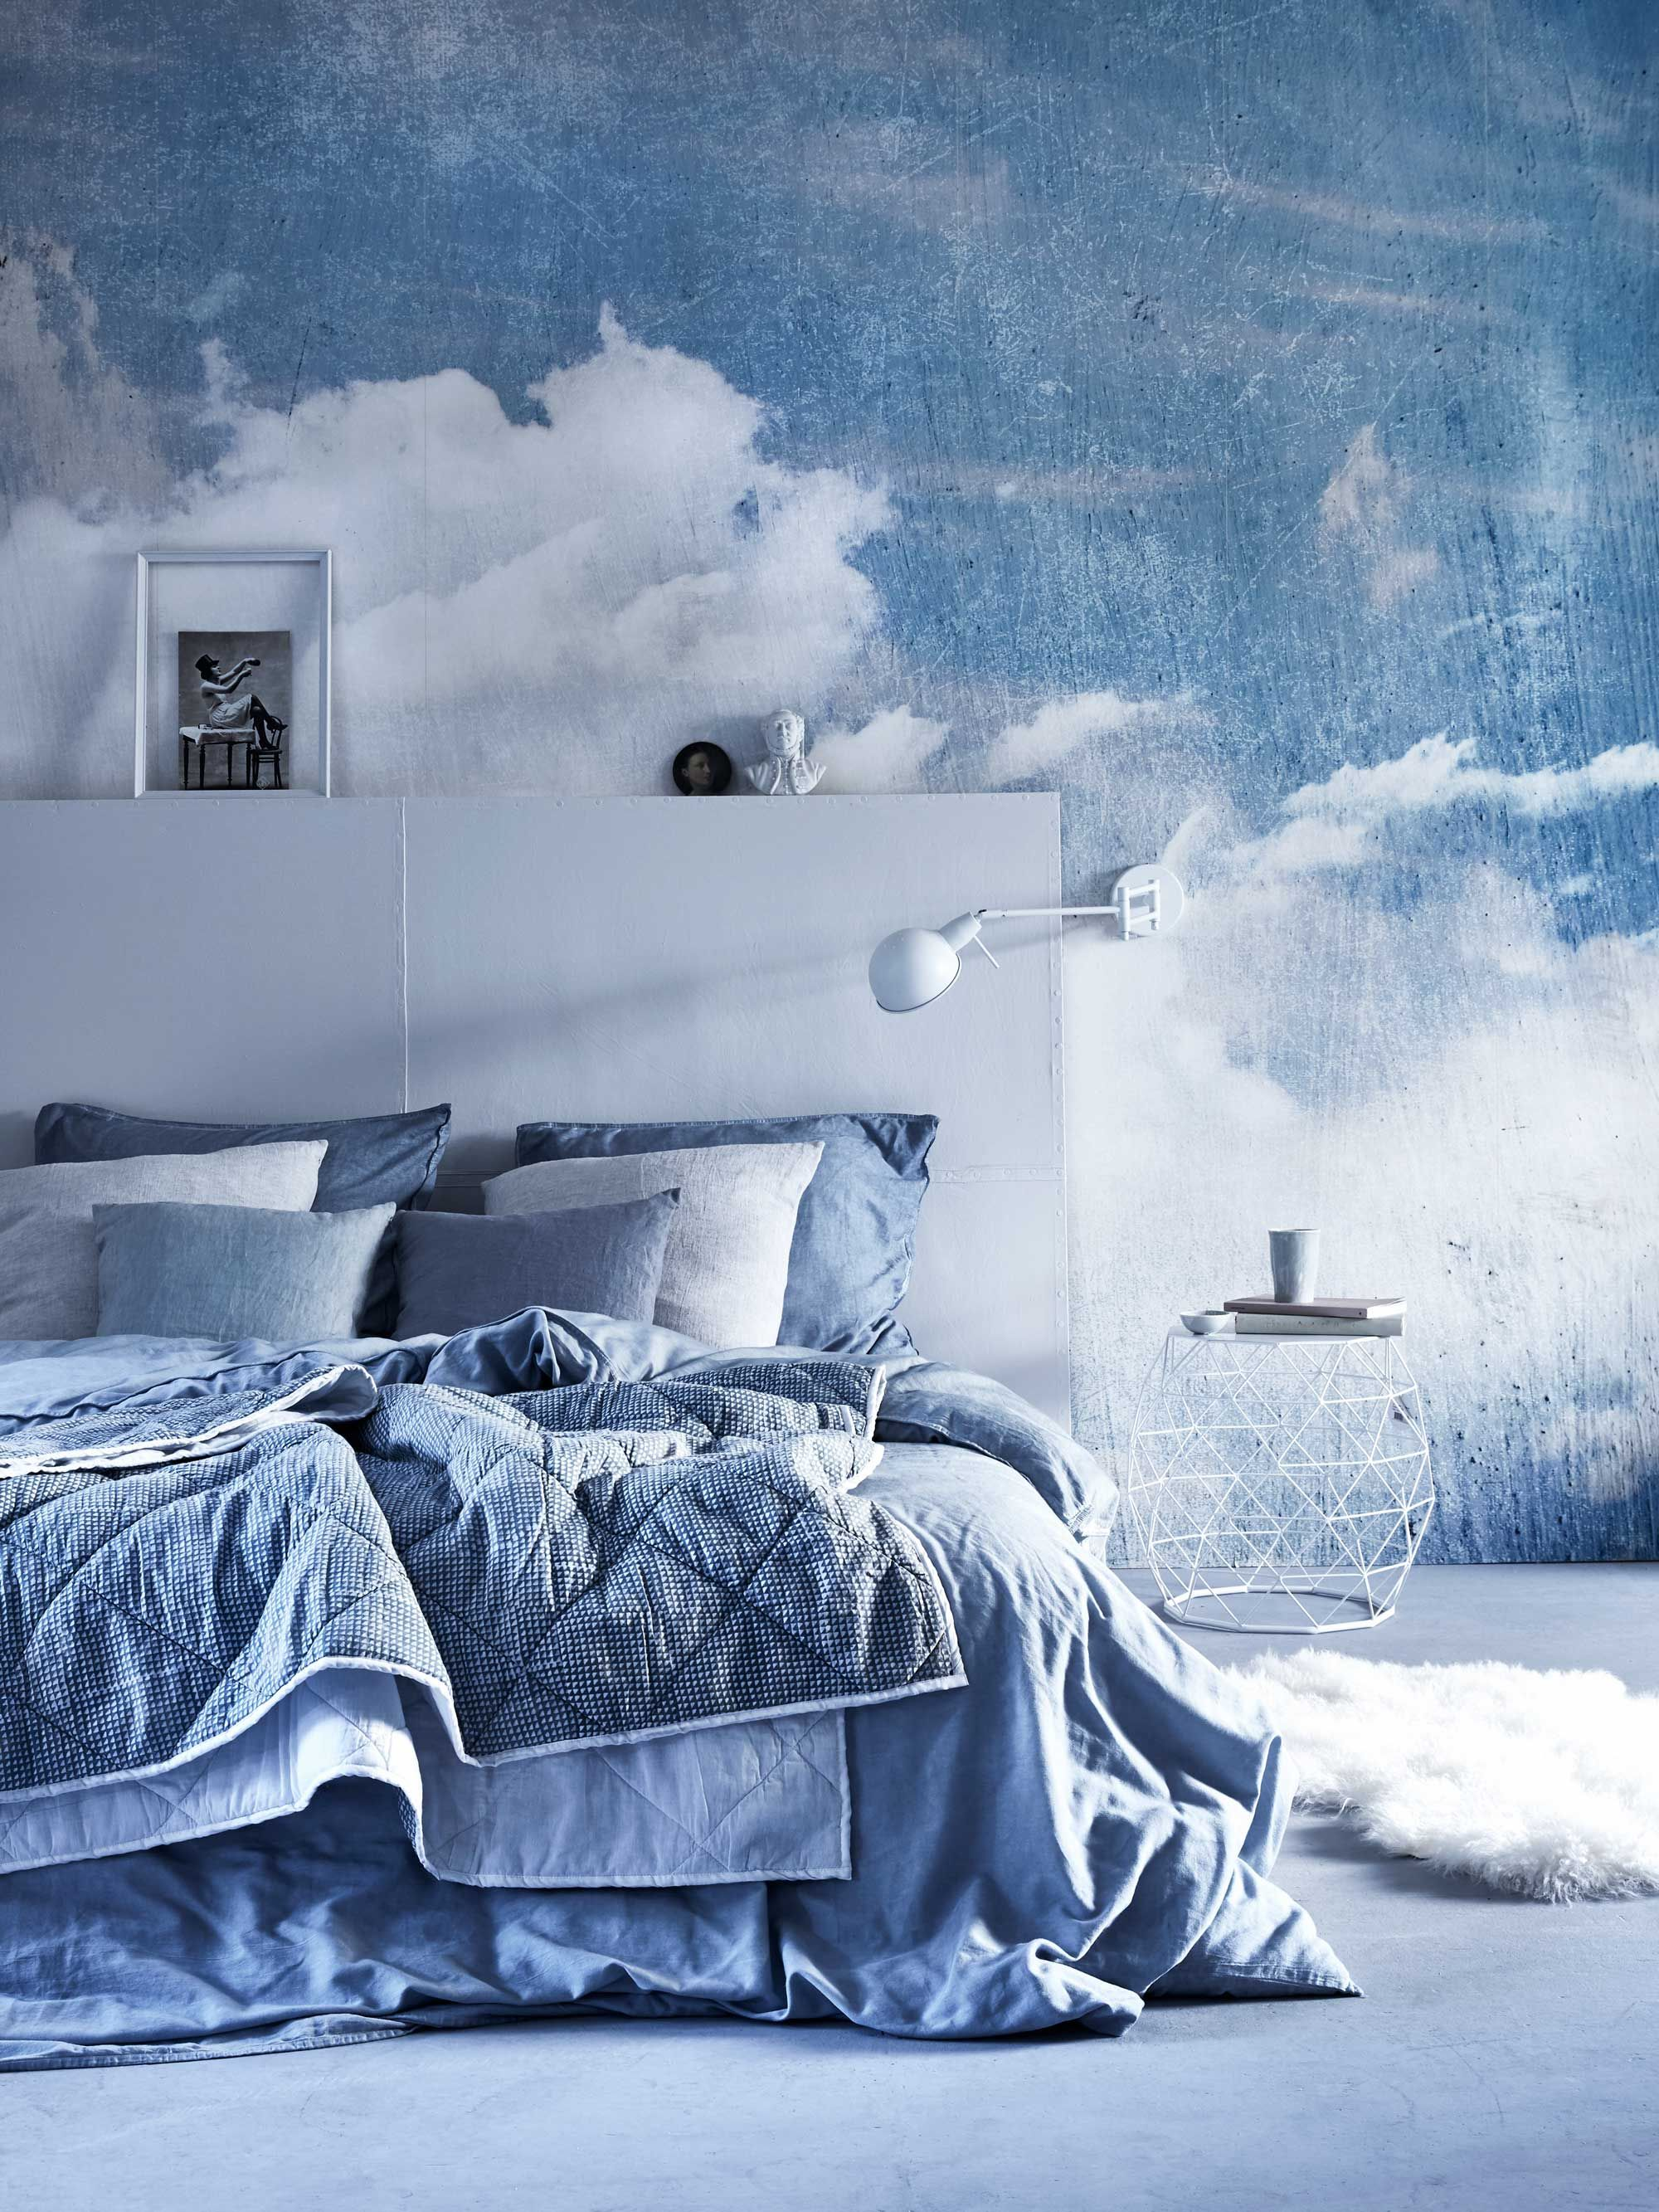 Cloud Wallpaper For Bedroom Blauwe Slaapkamer Met Wolken Behang Blue Bedroom With